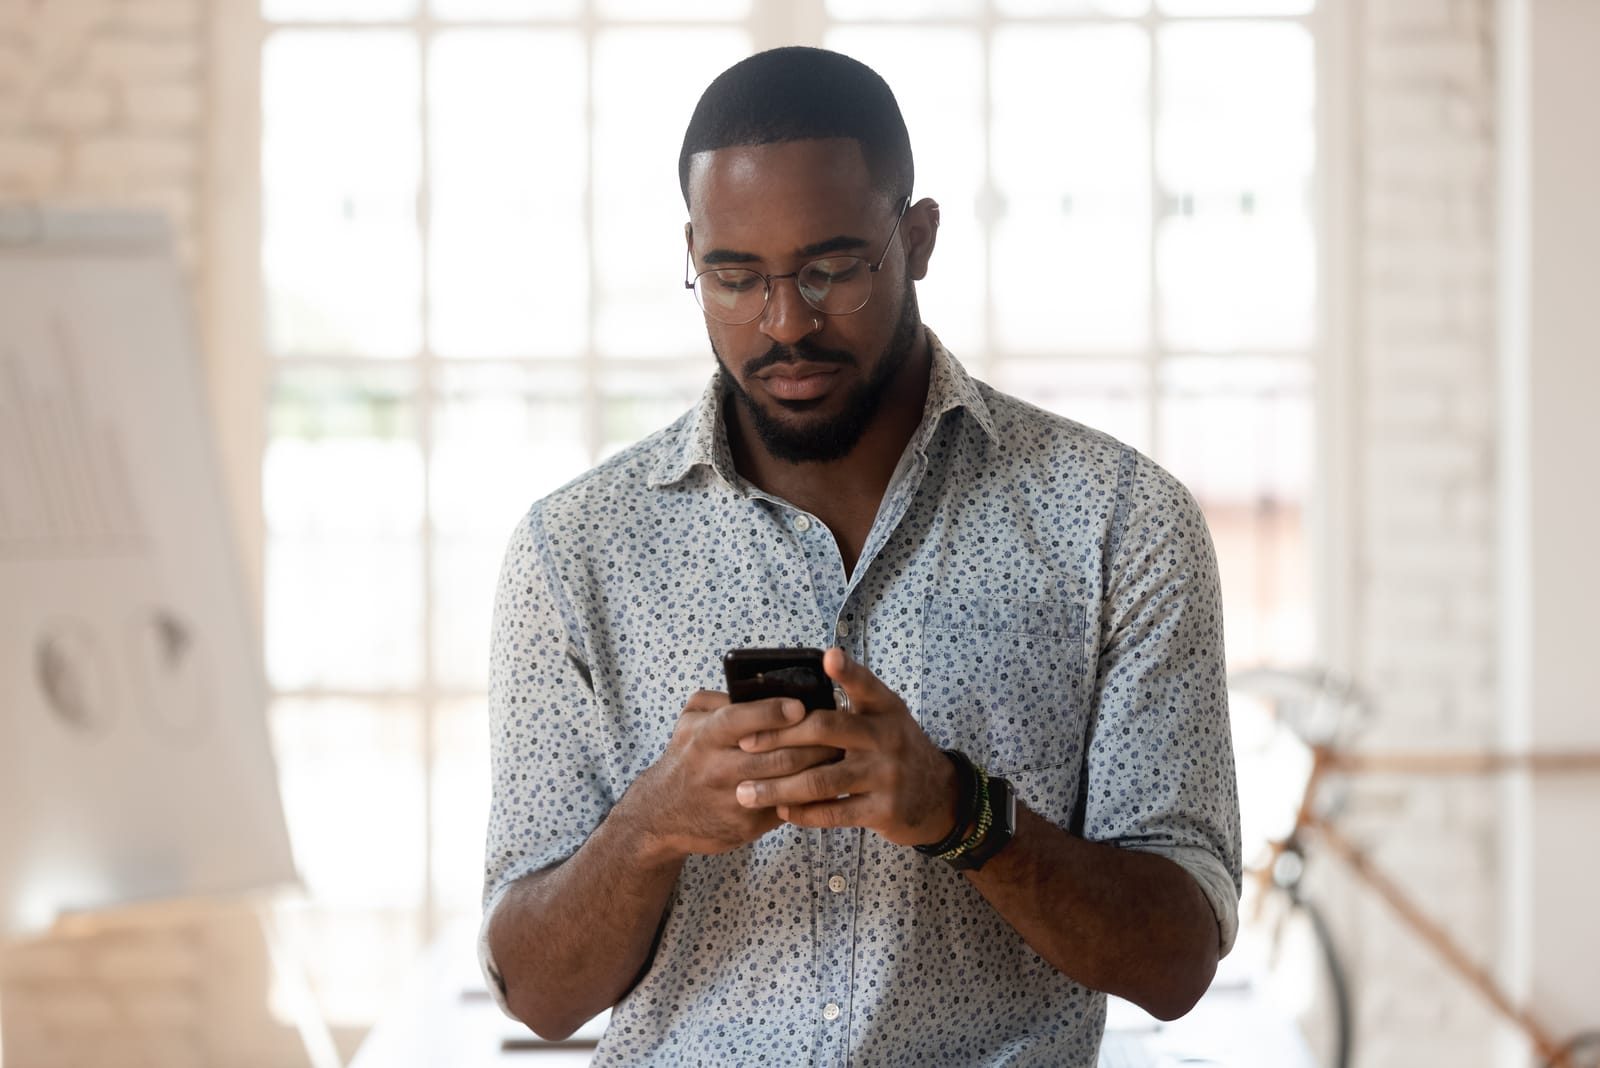 young employee using smartphone at office